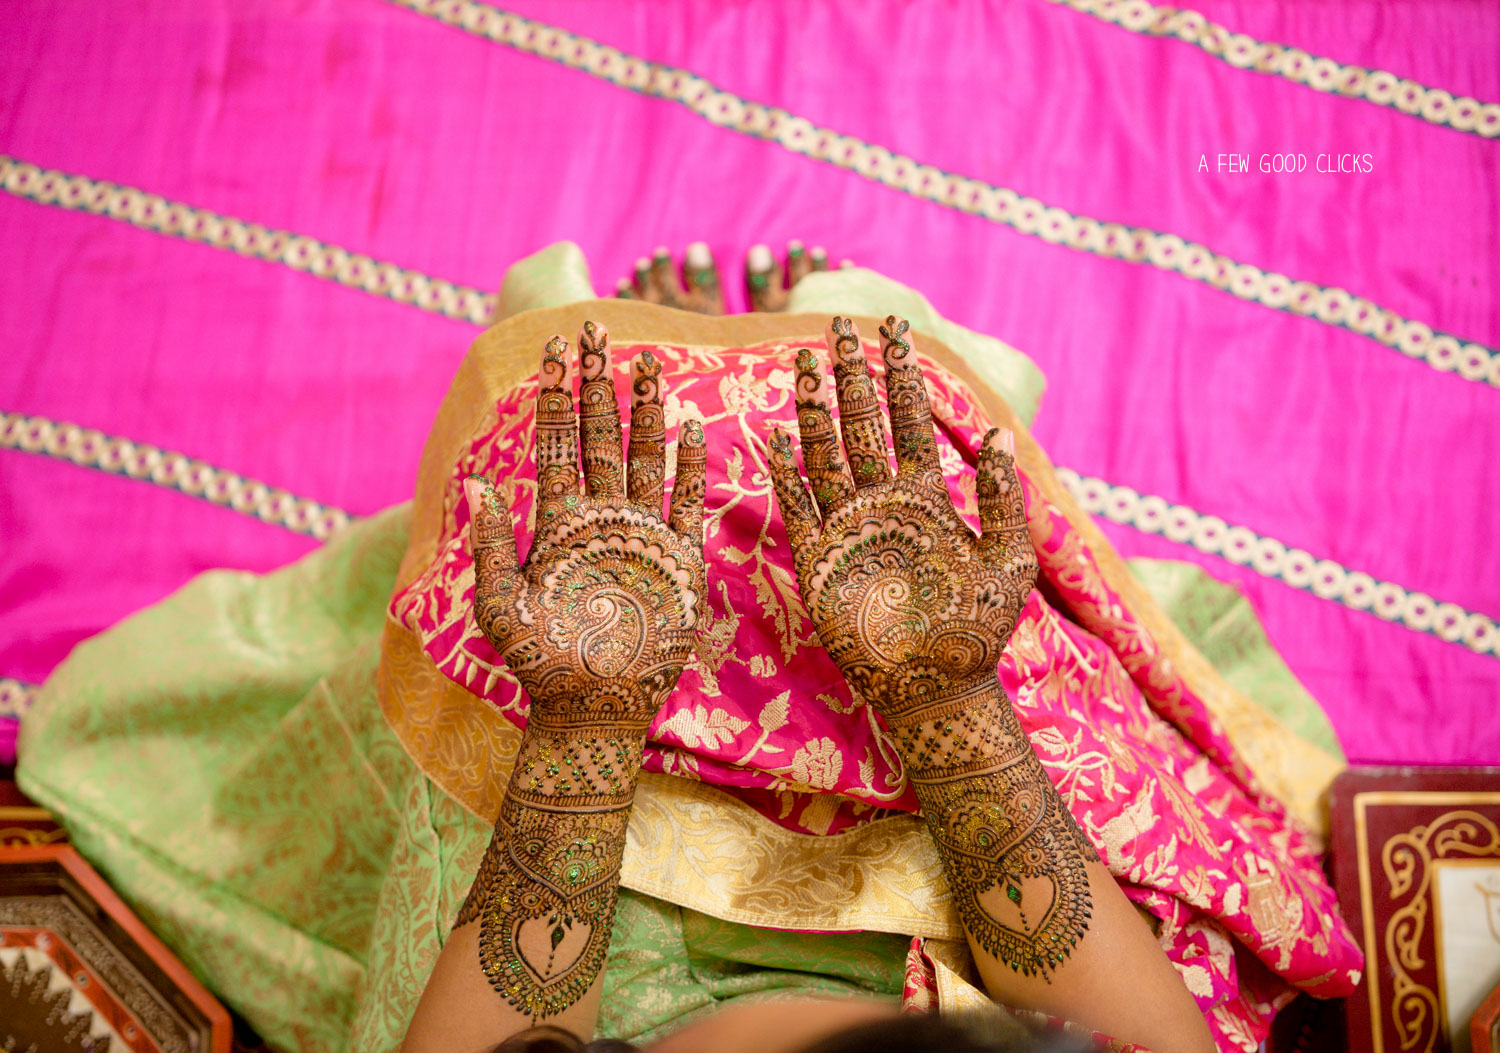 Indian Bride with beautiful mehndi design on palms.